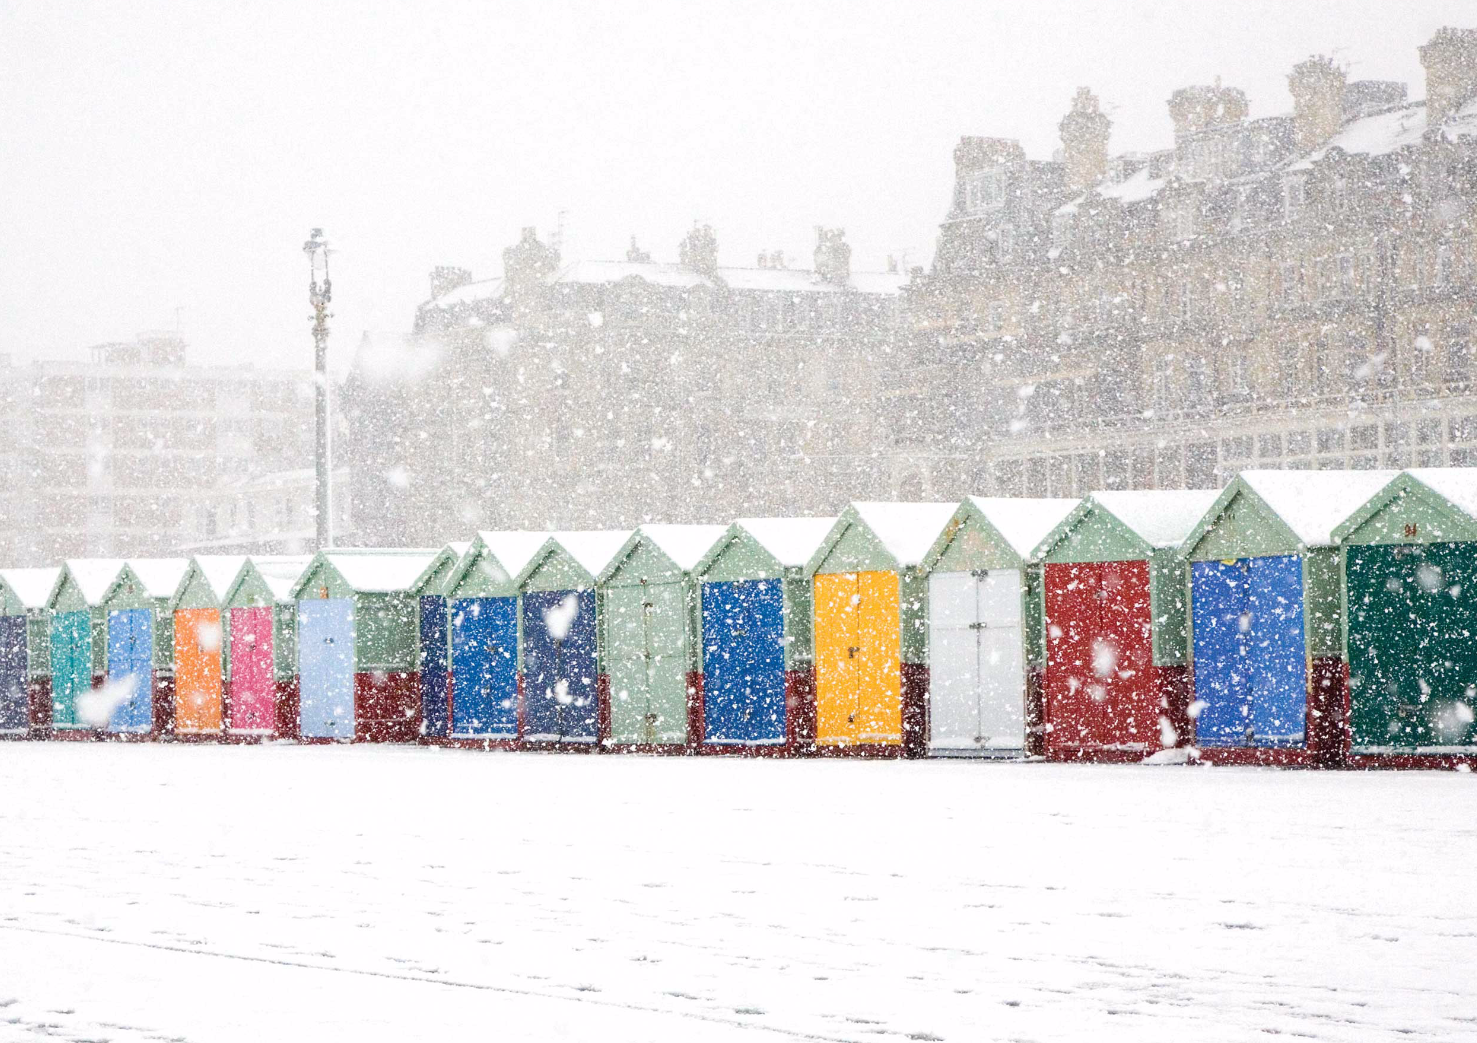 Beach Huts in the Snow, Hove #3